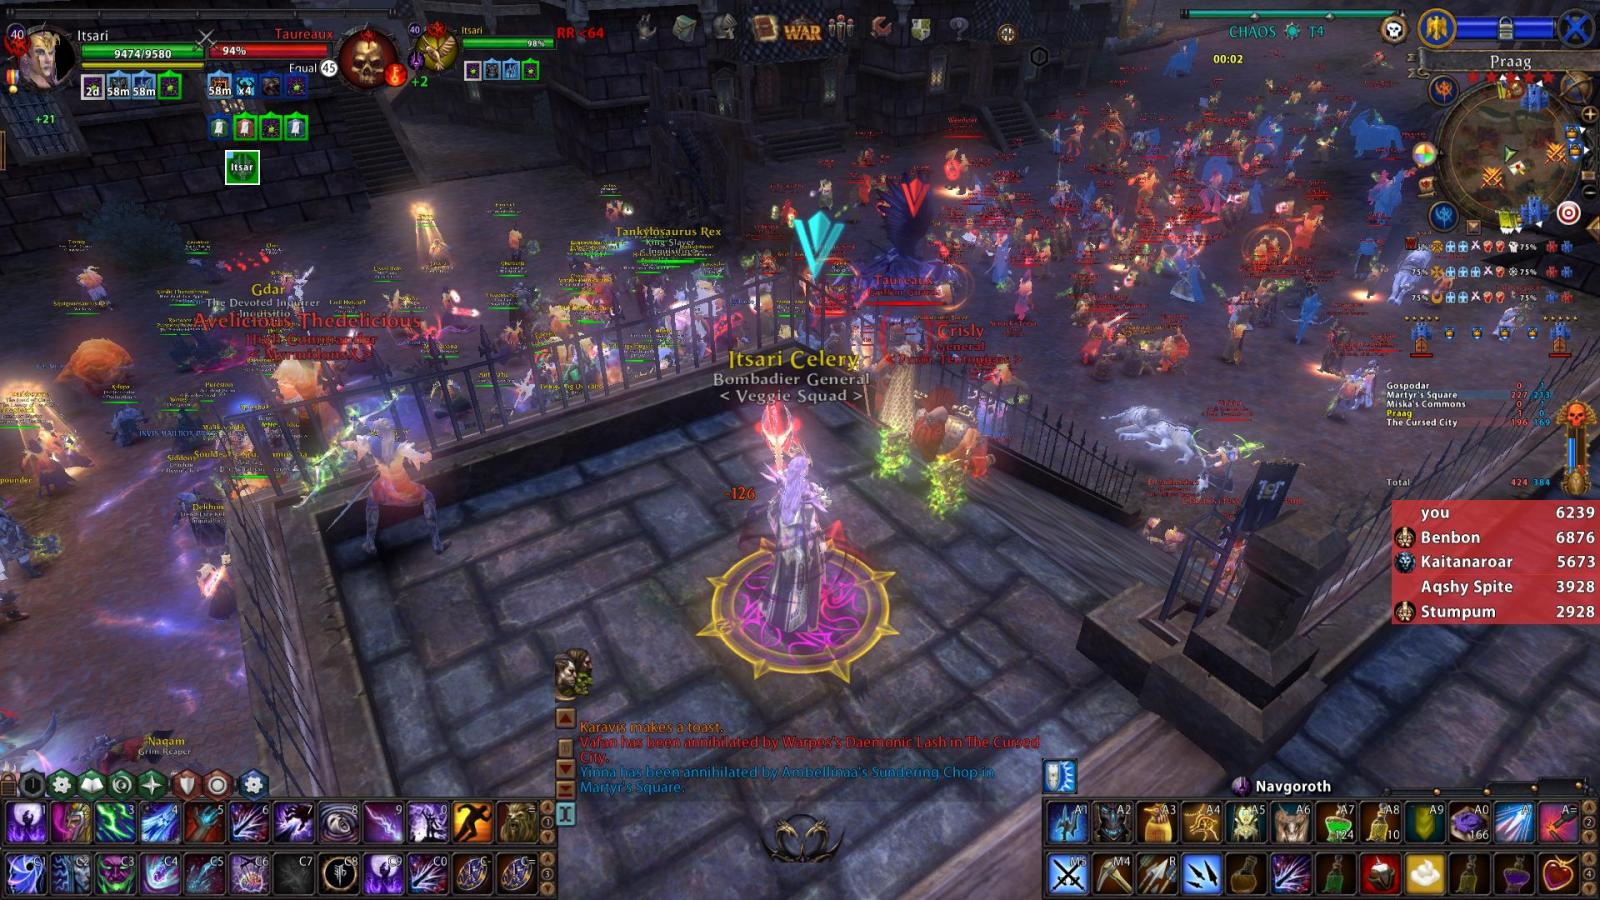 Warhammer Online Shuts Down Private Server Launches